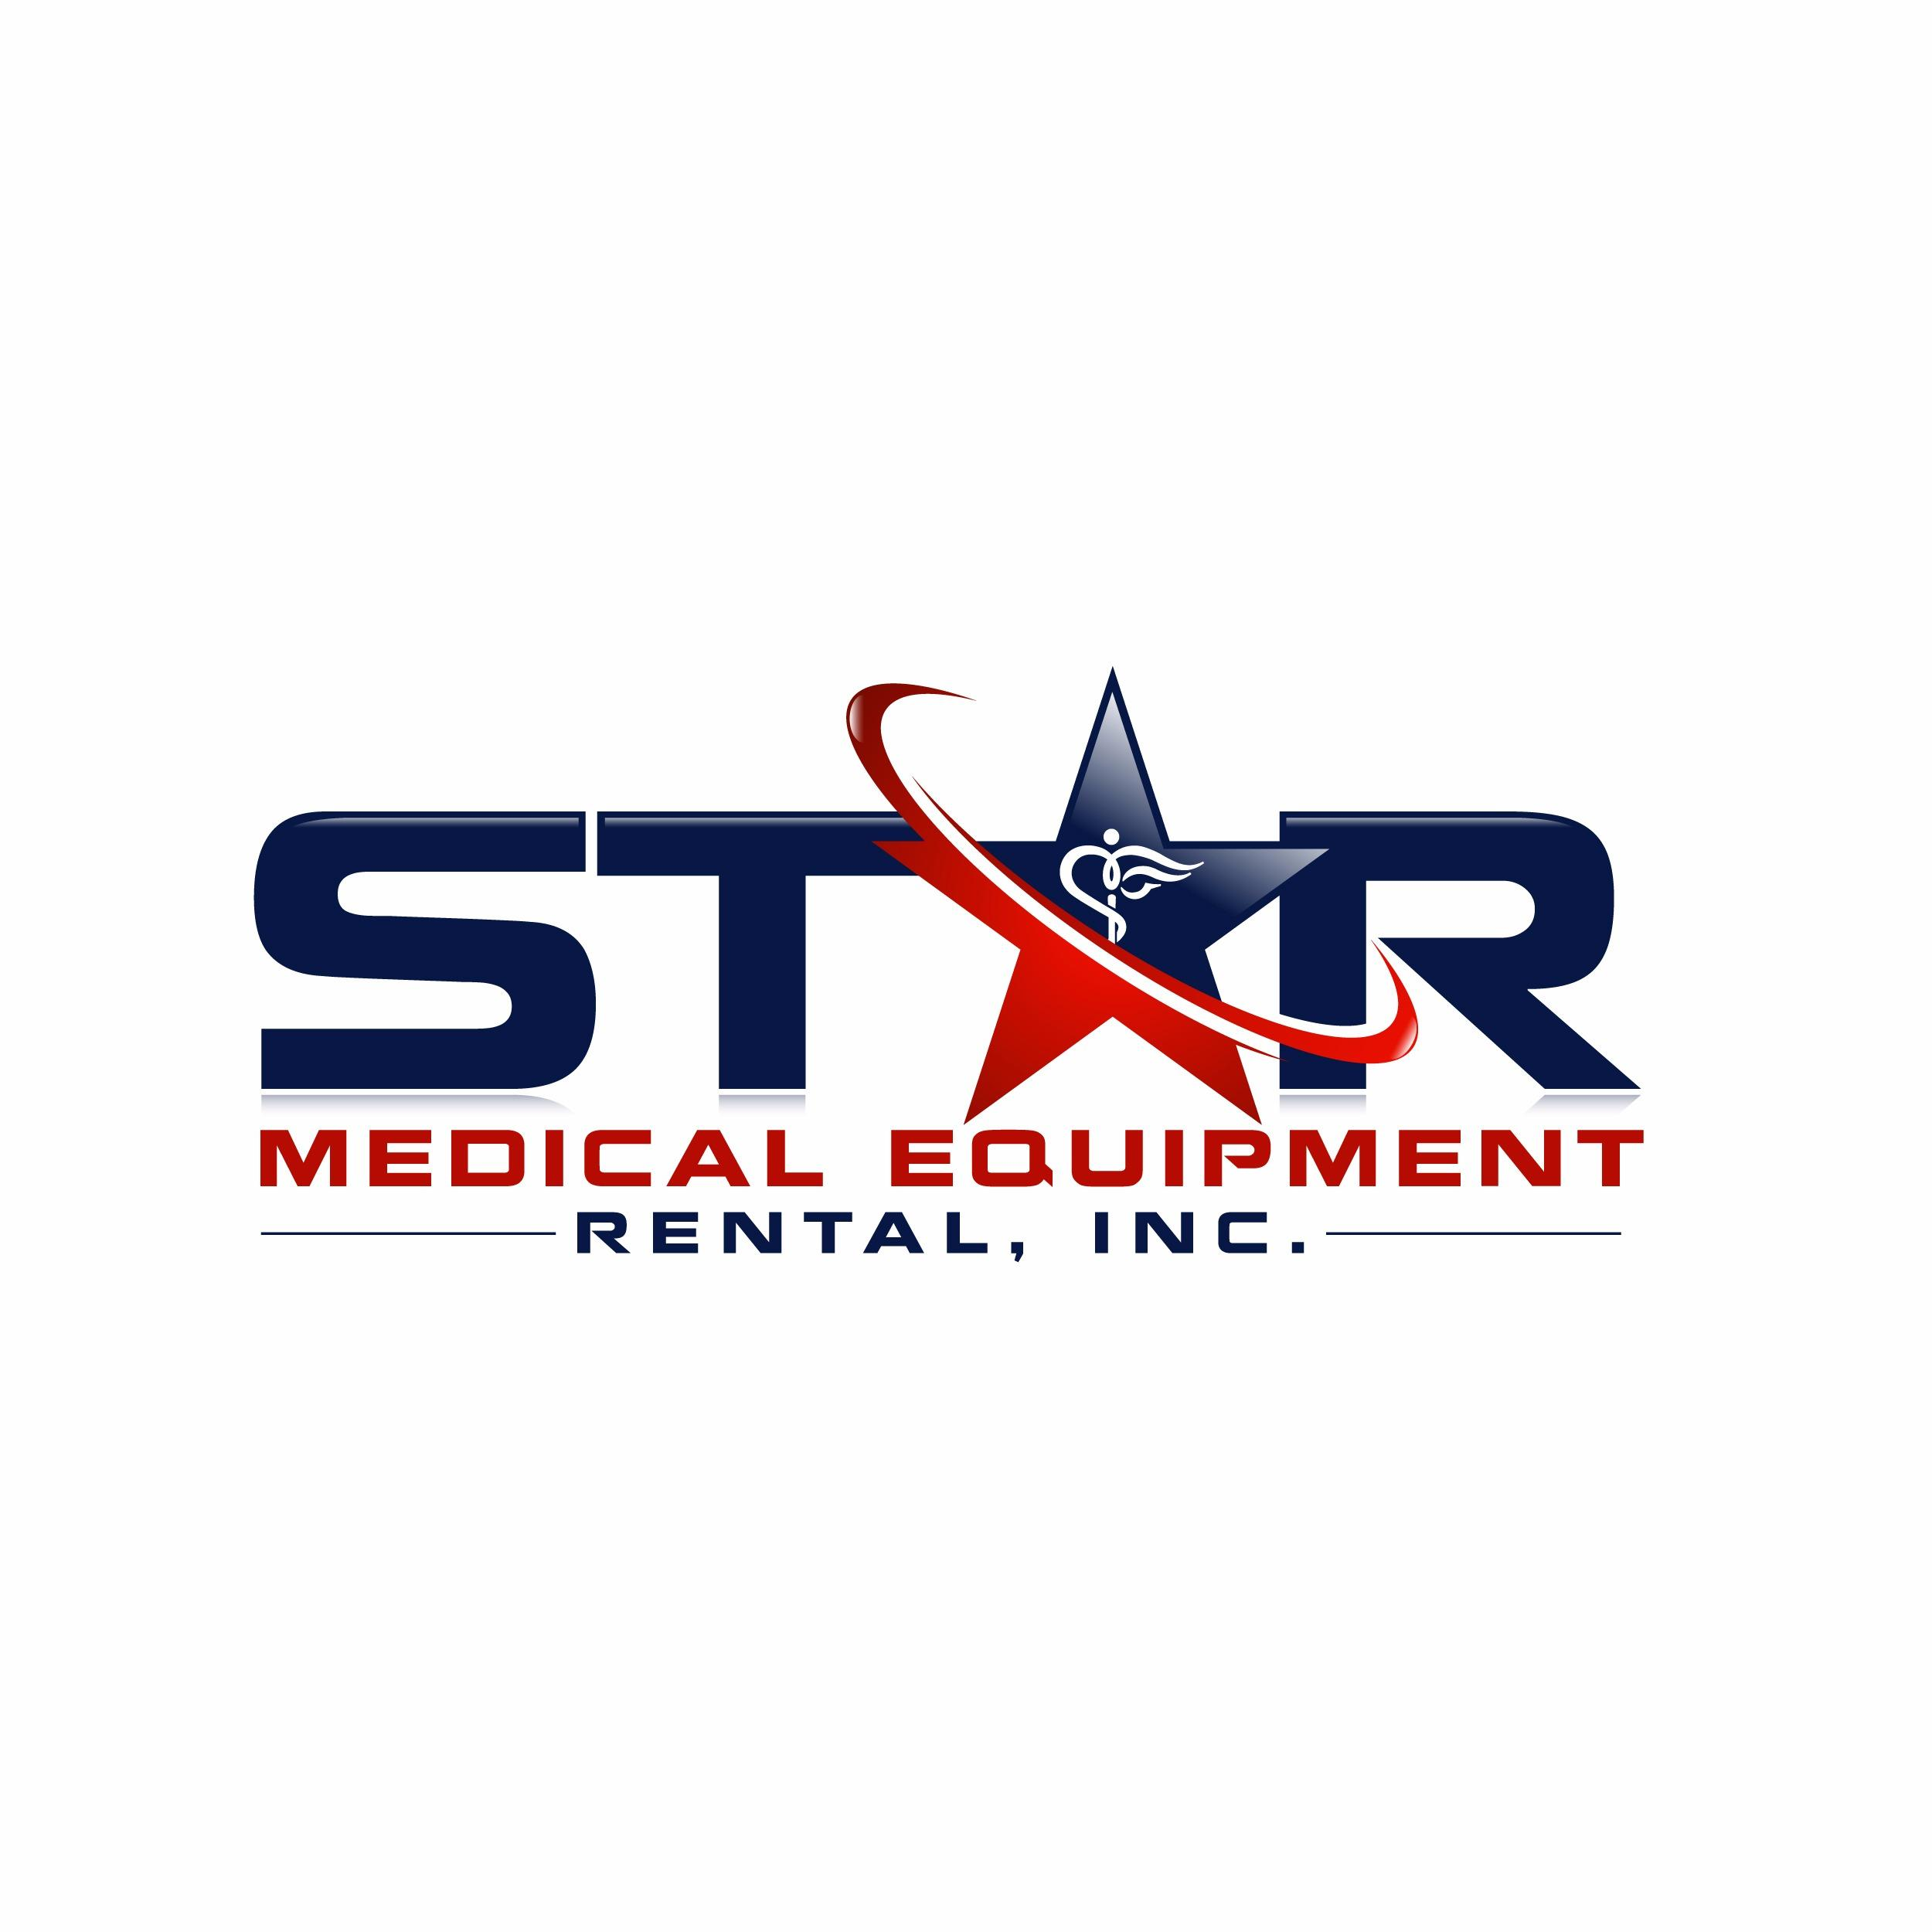 Star Medical Equipment & Rental